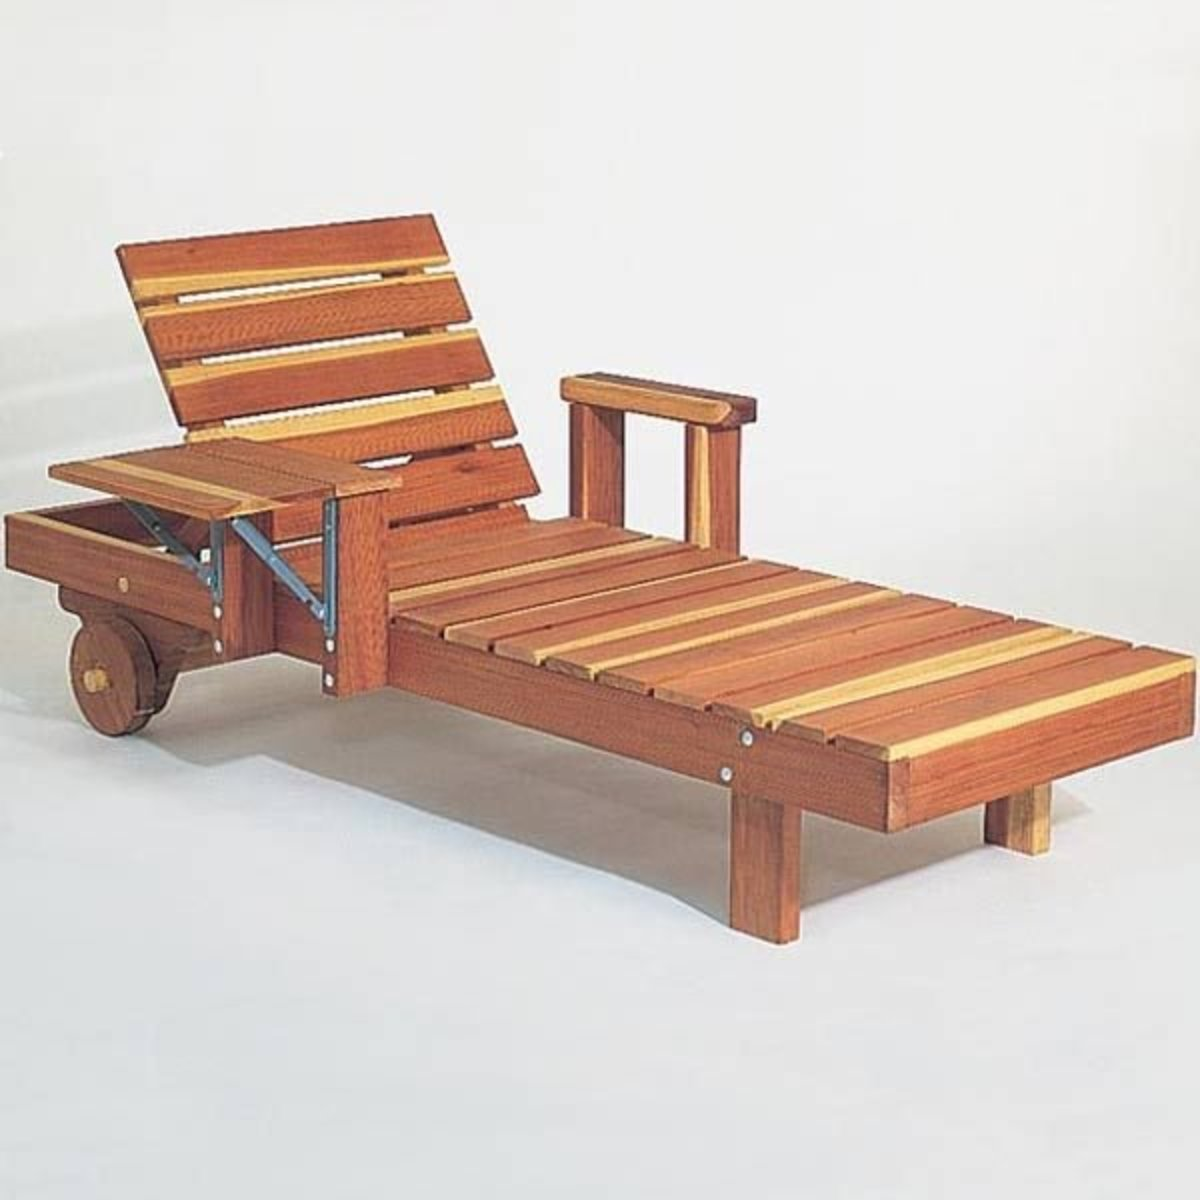 Woodworking Projects Plans: Woodworking Project Paper Plan To Build Redwood